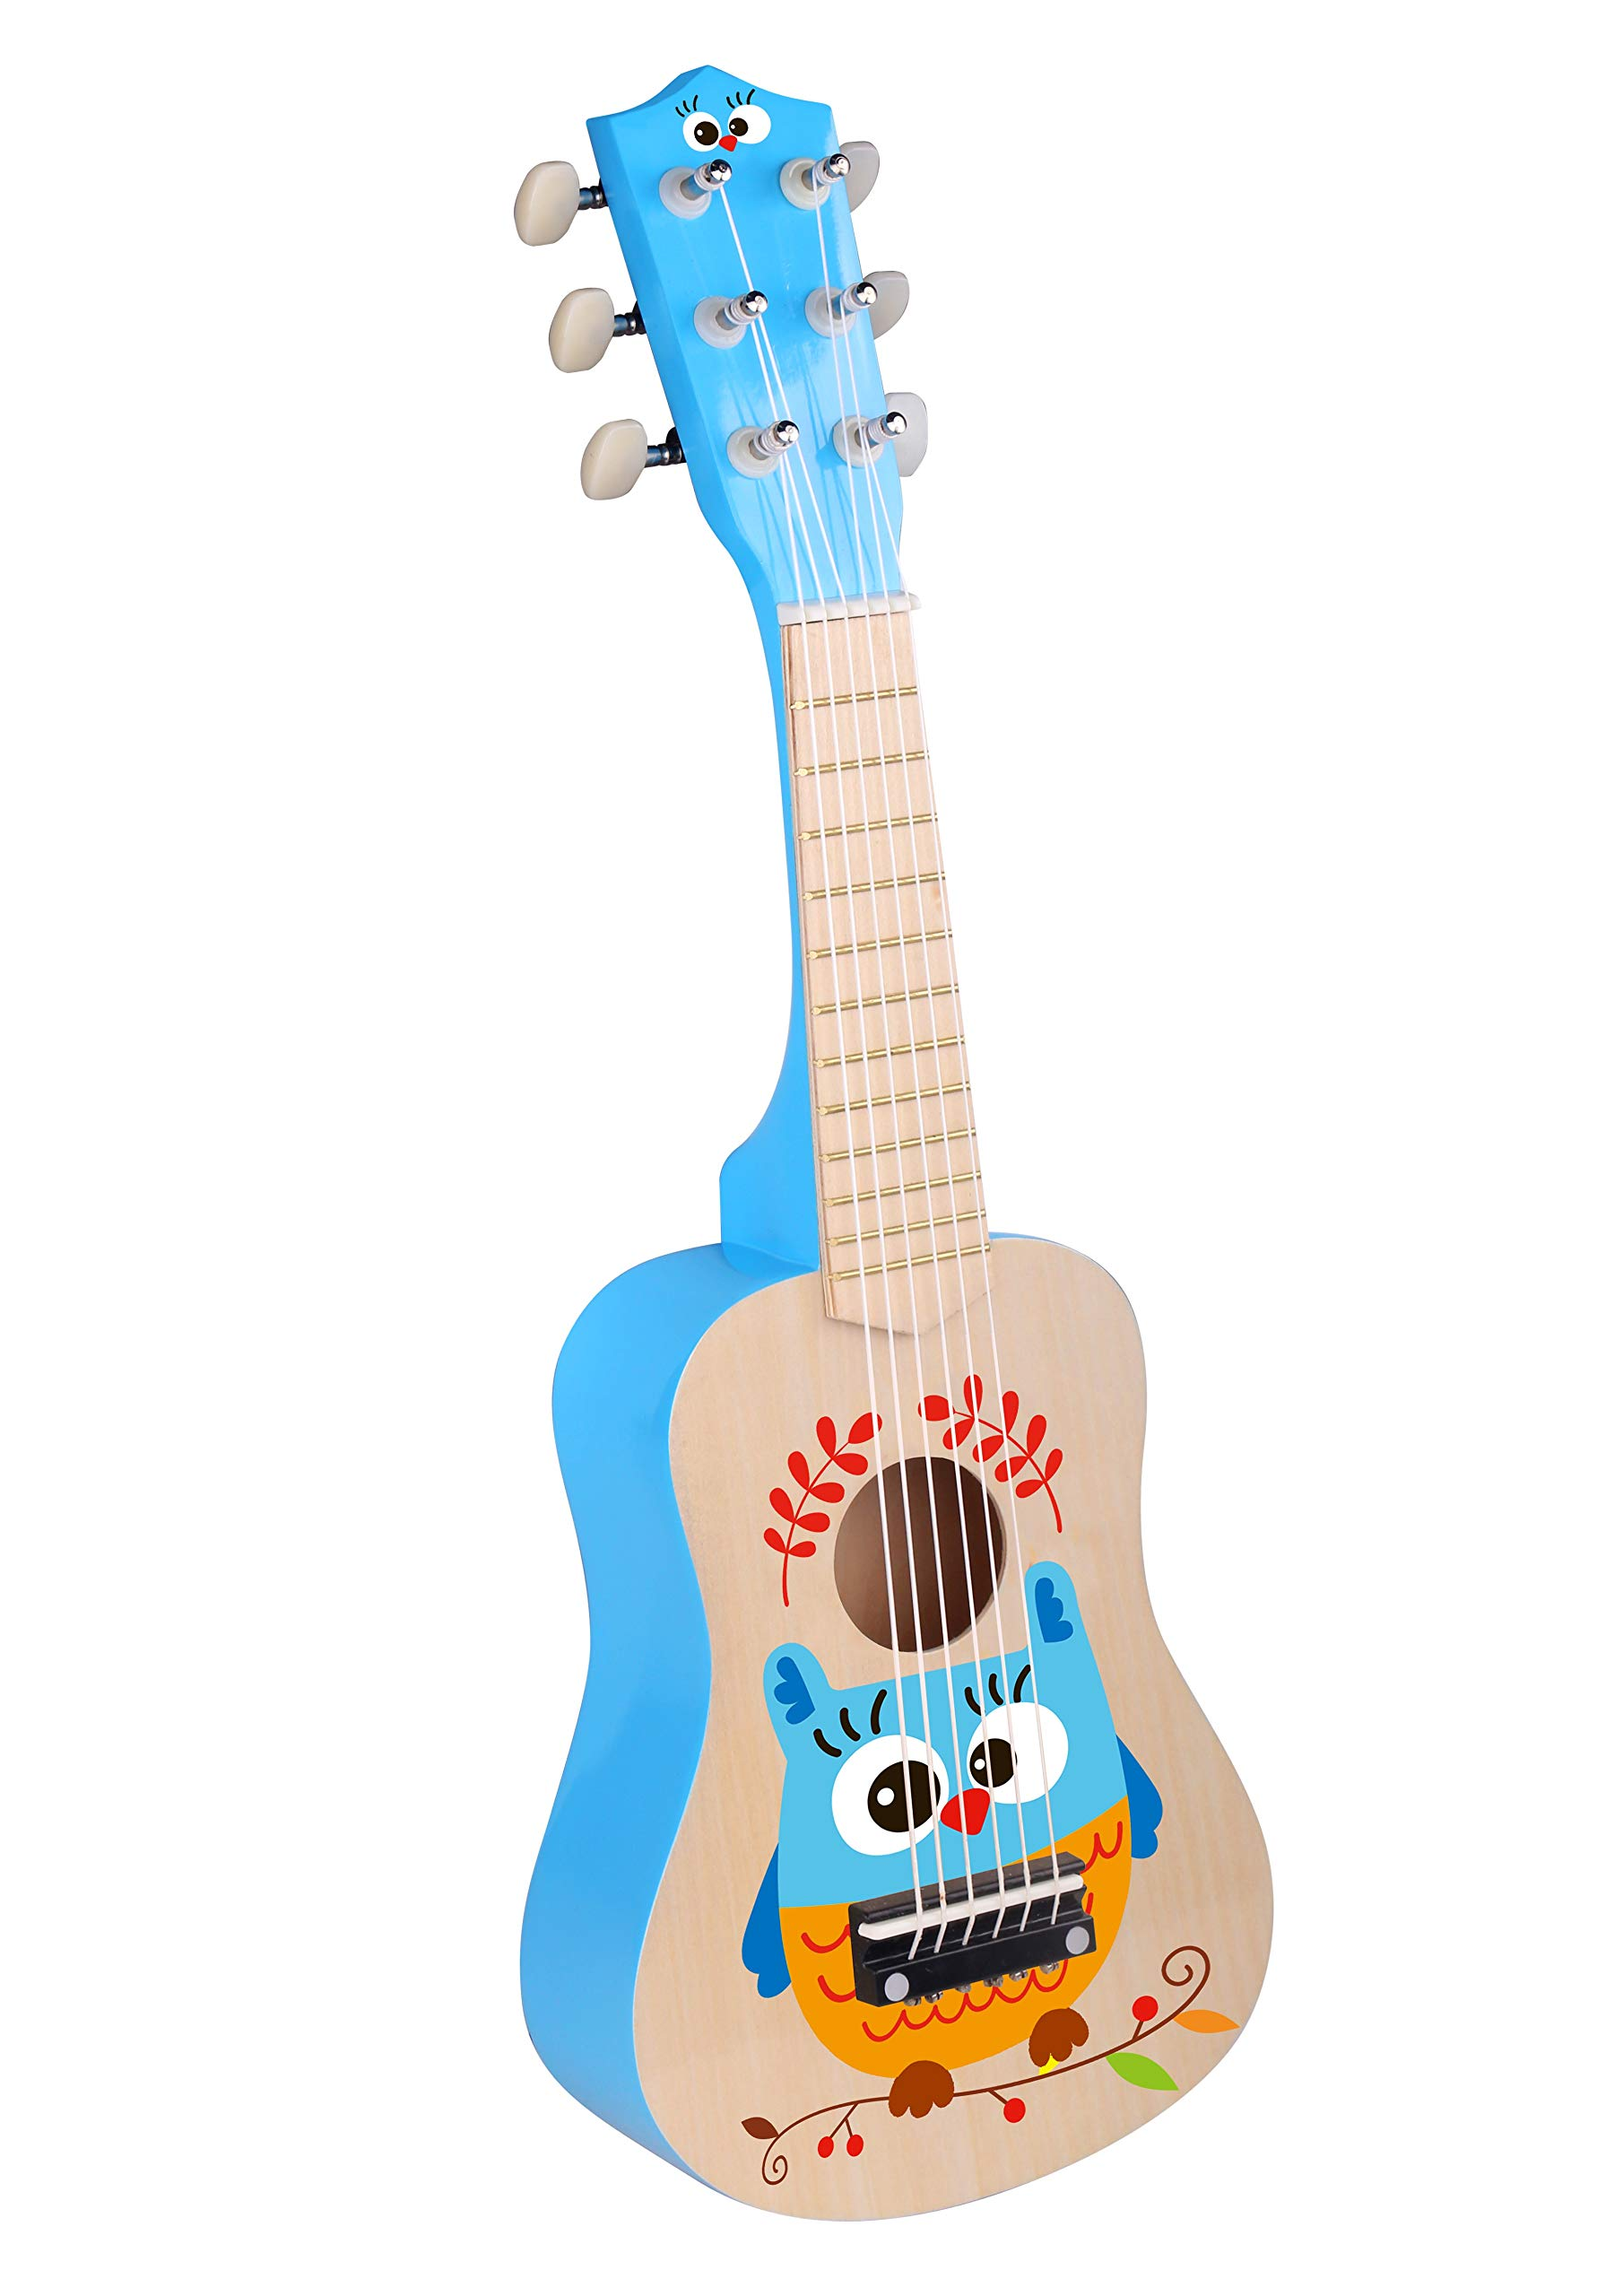 TOYSTER'S Wooden Toy Guitar Ukulele with Real Tuning | Colorful Musical Instrument for Toddler Boys and Girls | Fun Interactive Educational Toy Makes a Fantastic Children's Gift by TOYSTER'S